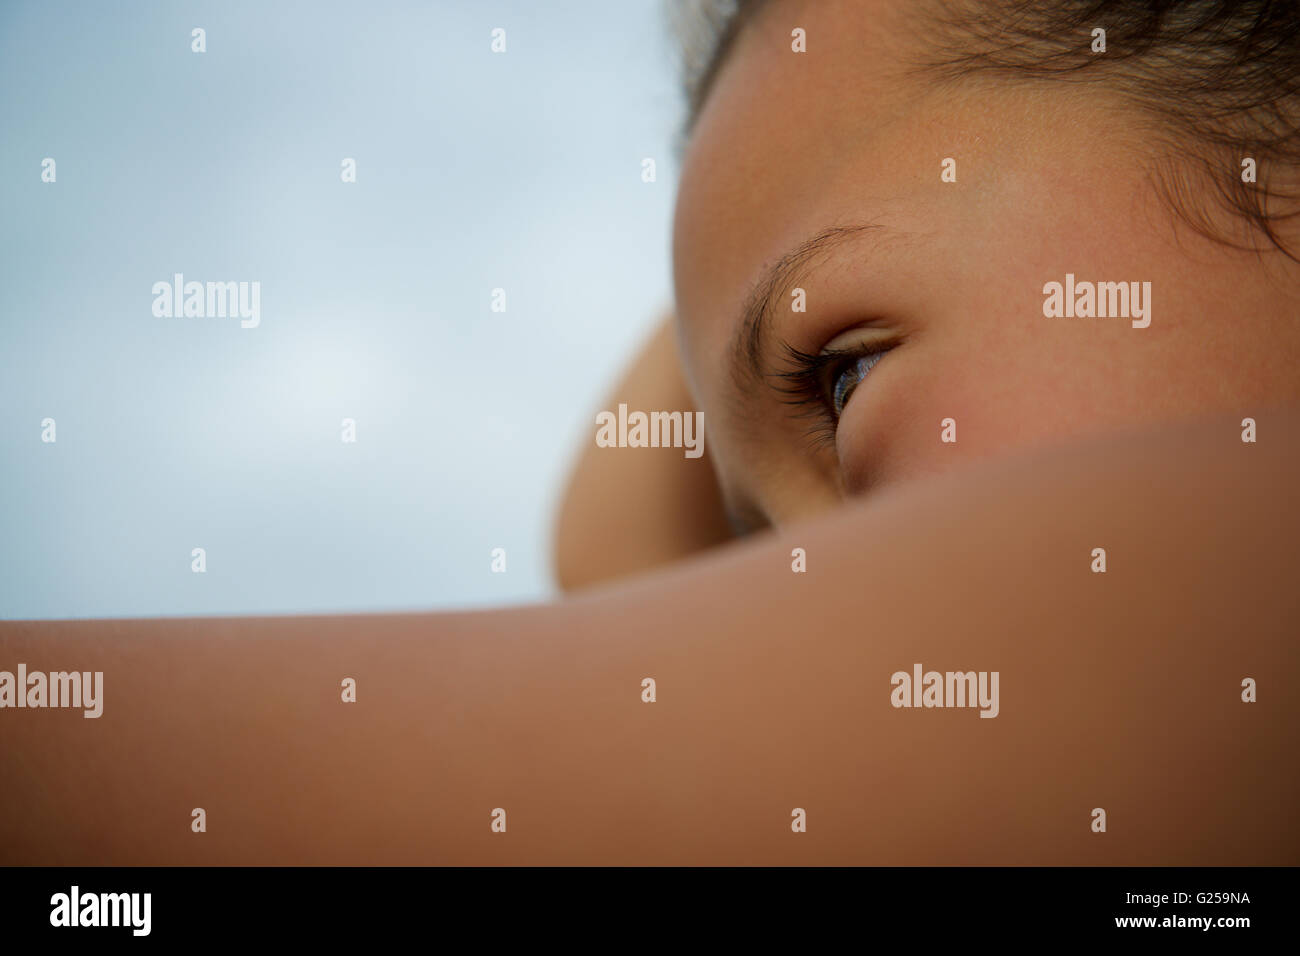 Close-up portrait of a woman looking ahead - Stock Image